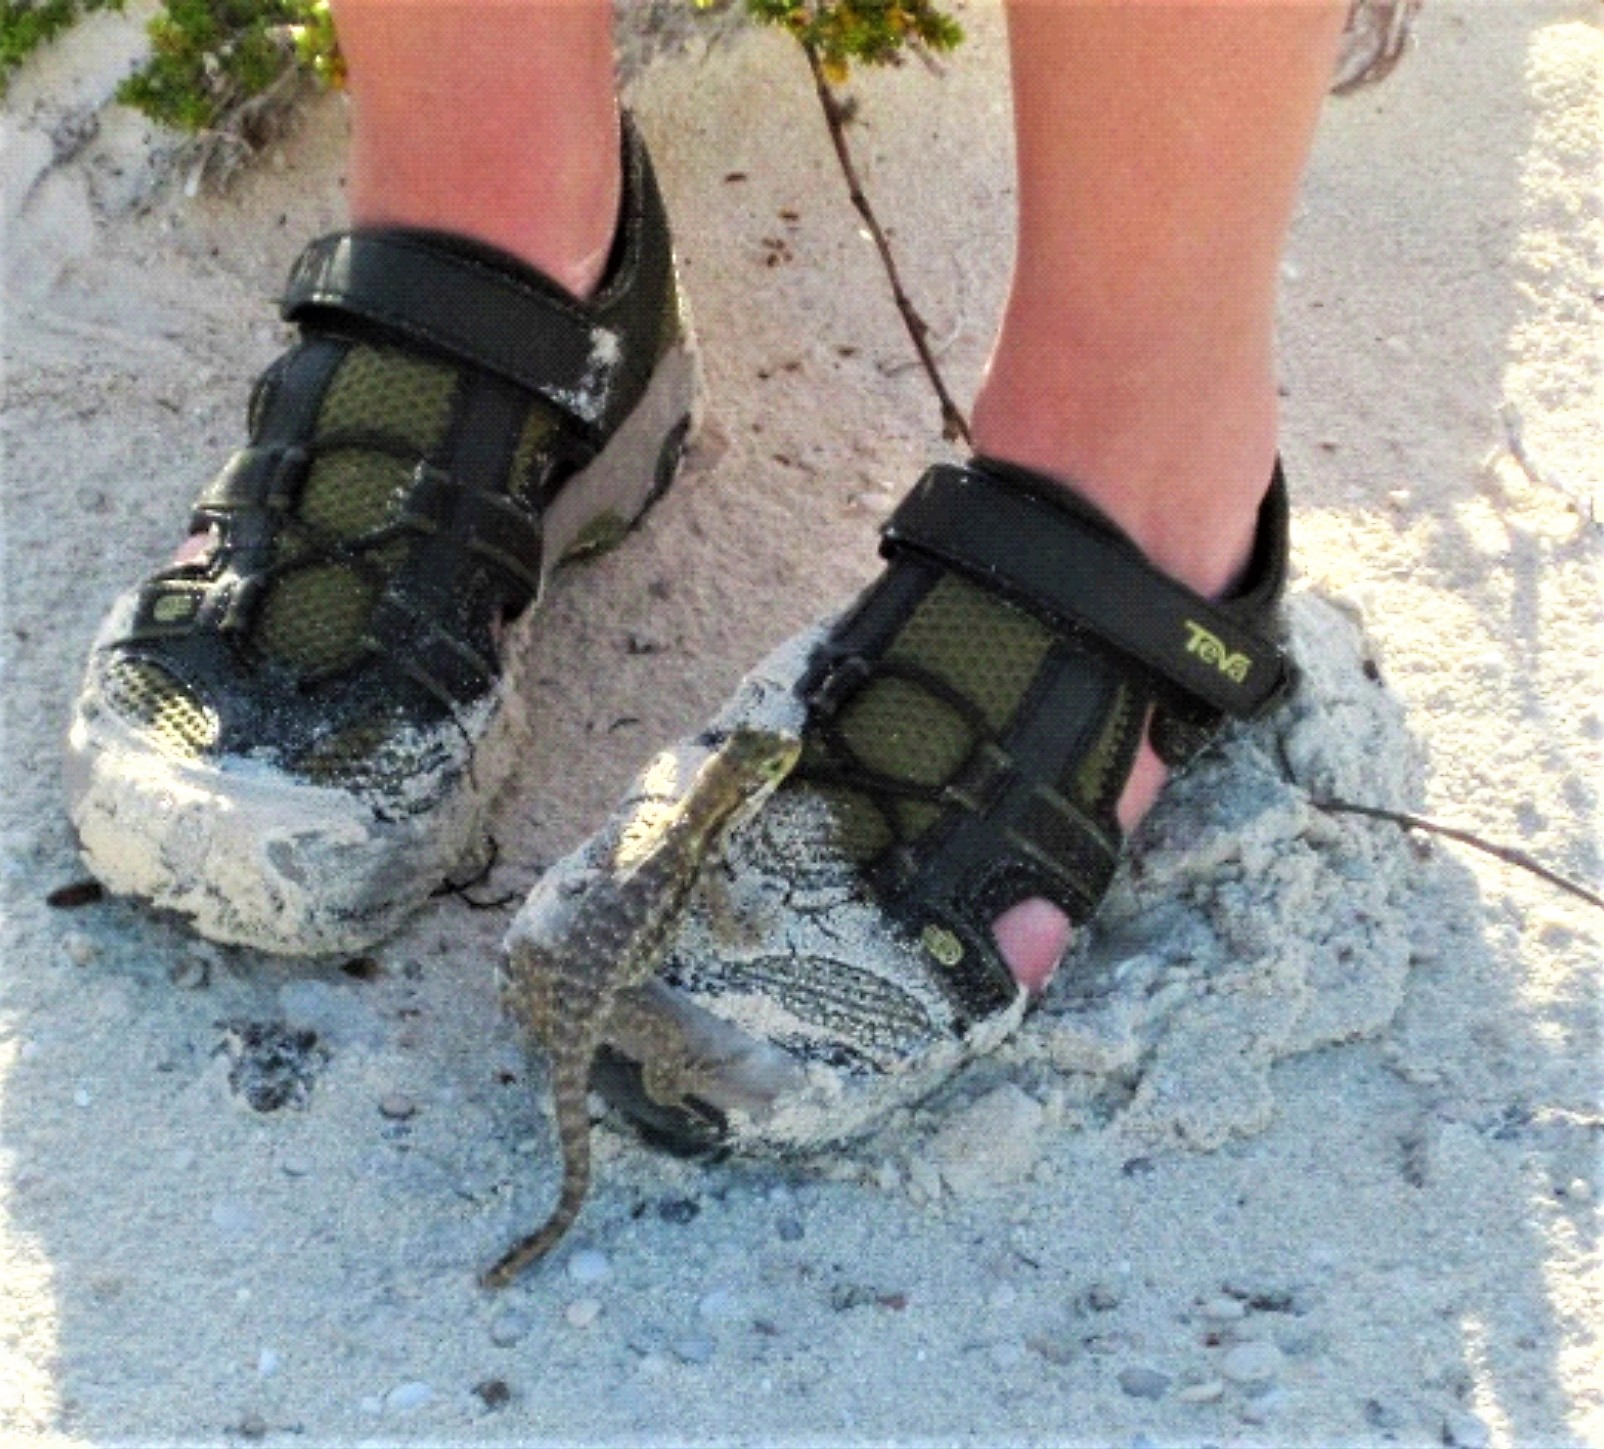 Sneakers on a beach, with a Cury-tail lizard on one of the shoes